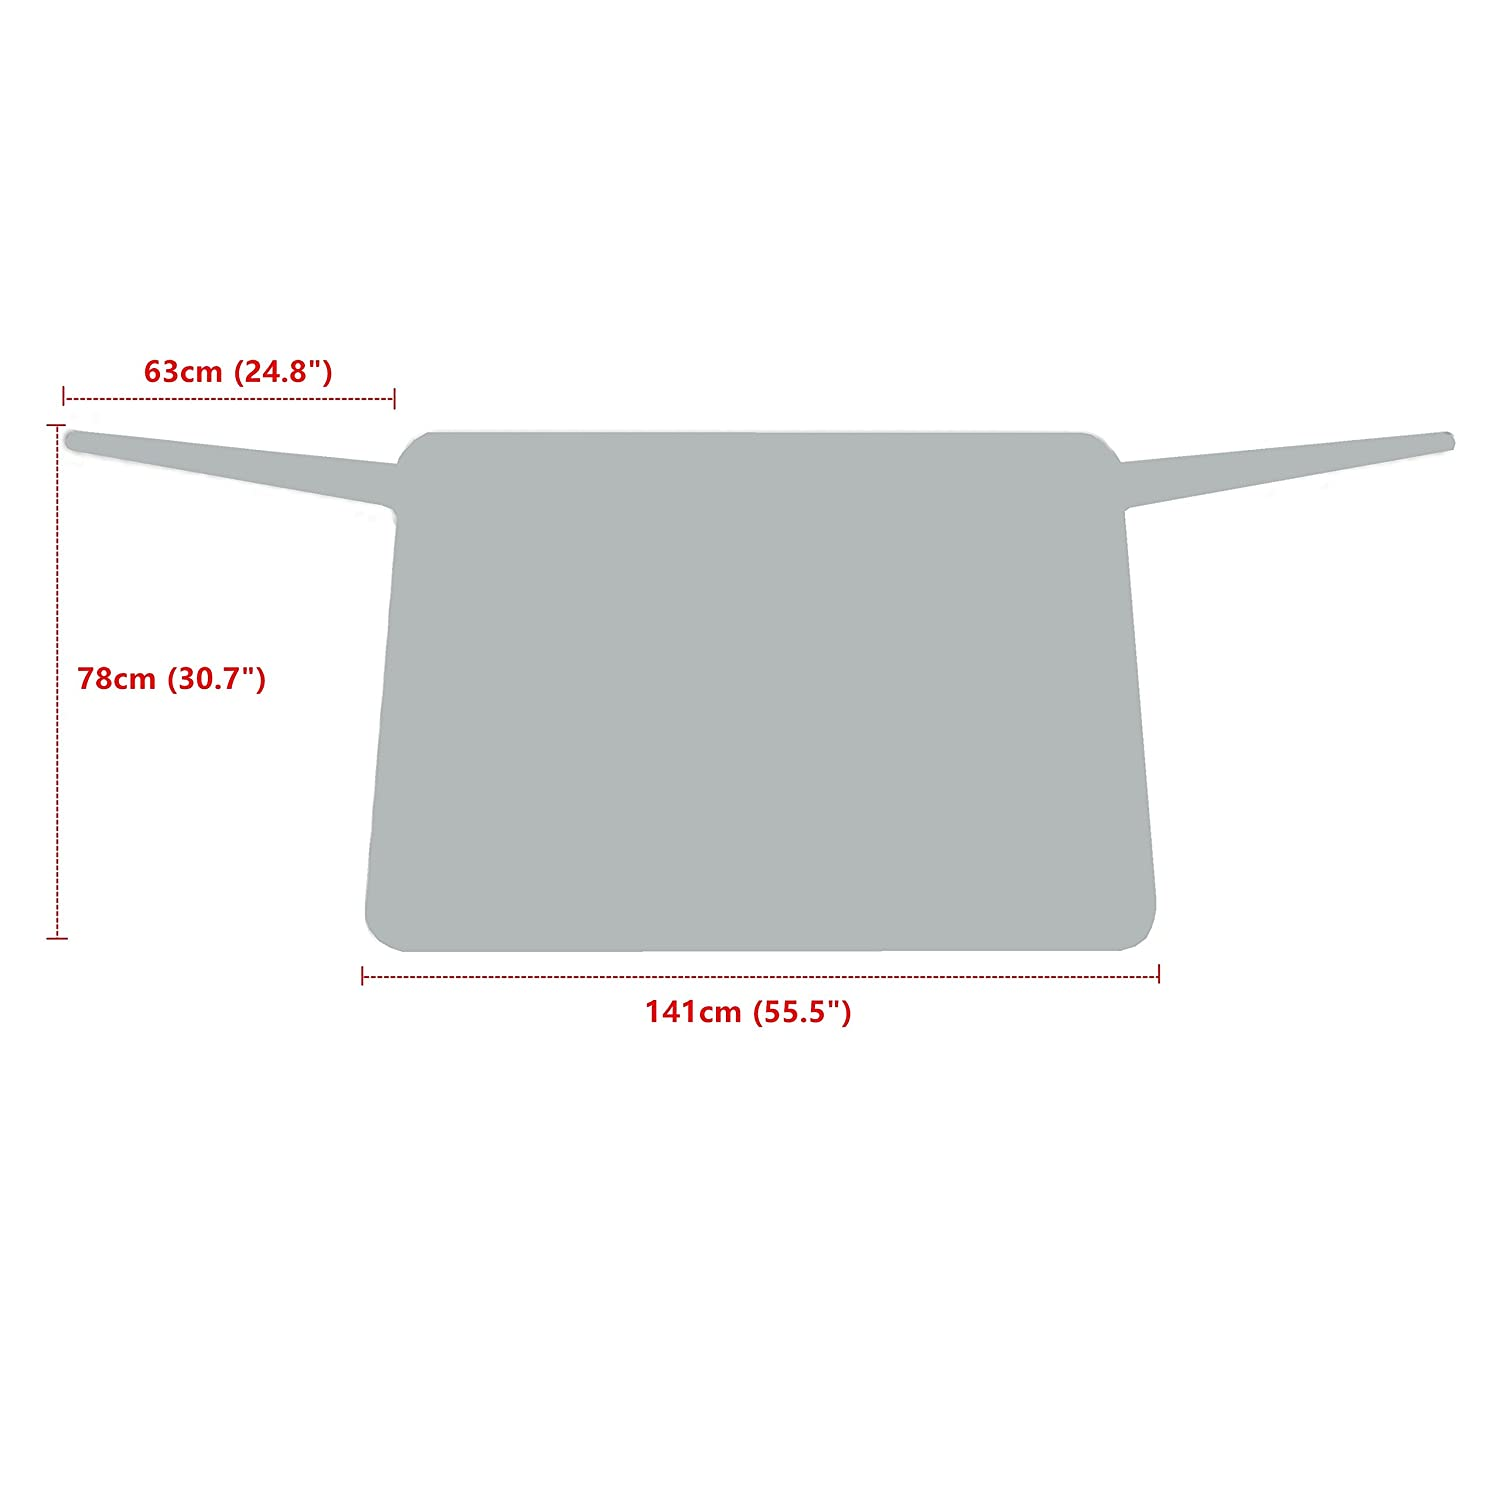 Jackey Awesome Windshield Snow Cover Car Windshield Snow /& Sun Shade Protector Exterior Shield Guard Fits Most Weather Winter Summer Auto Sunshade Cover Silver, for Vehicle Rear Windshield